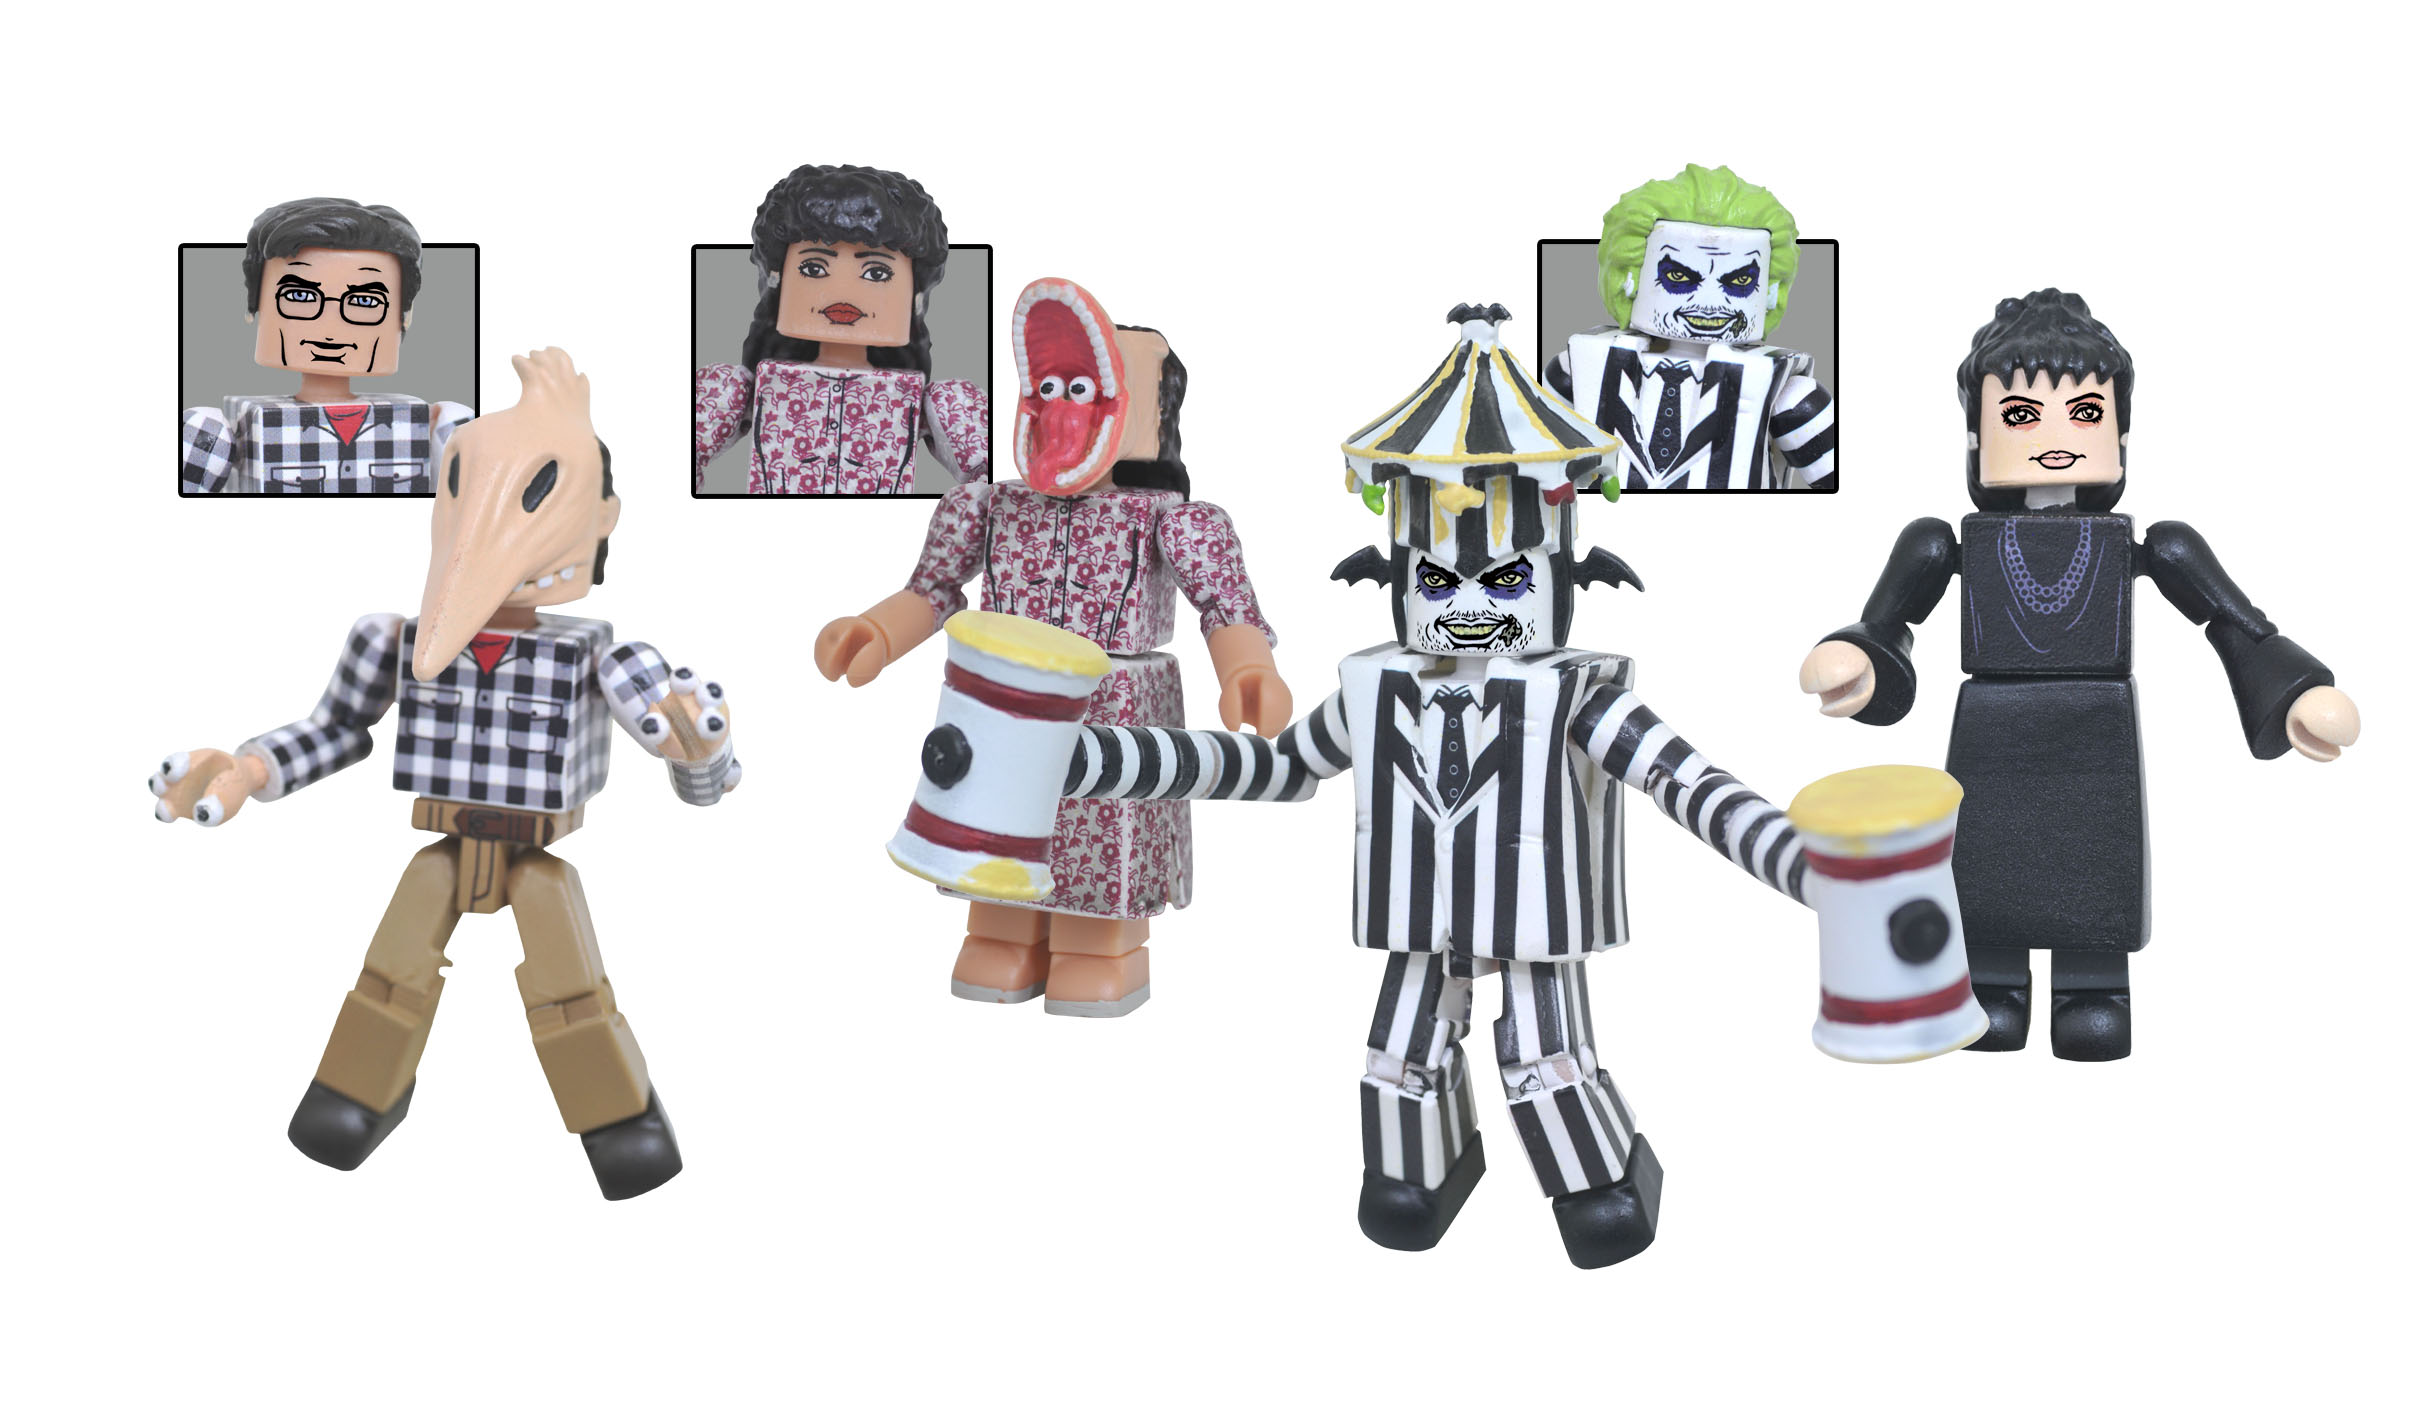 BeetlejuiceMMgroup - Get the First Look at Diamond Select's New Beetlejuice Figures